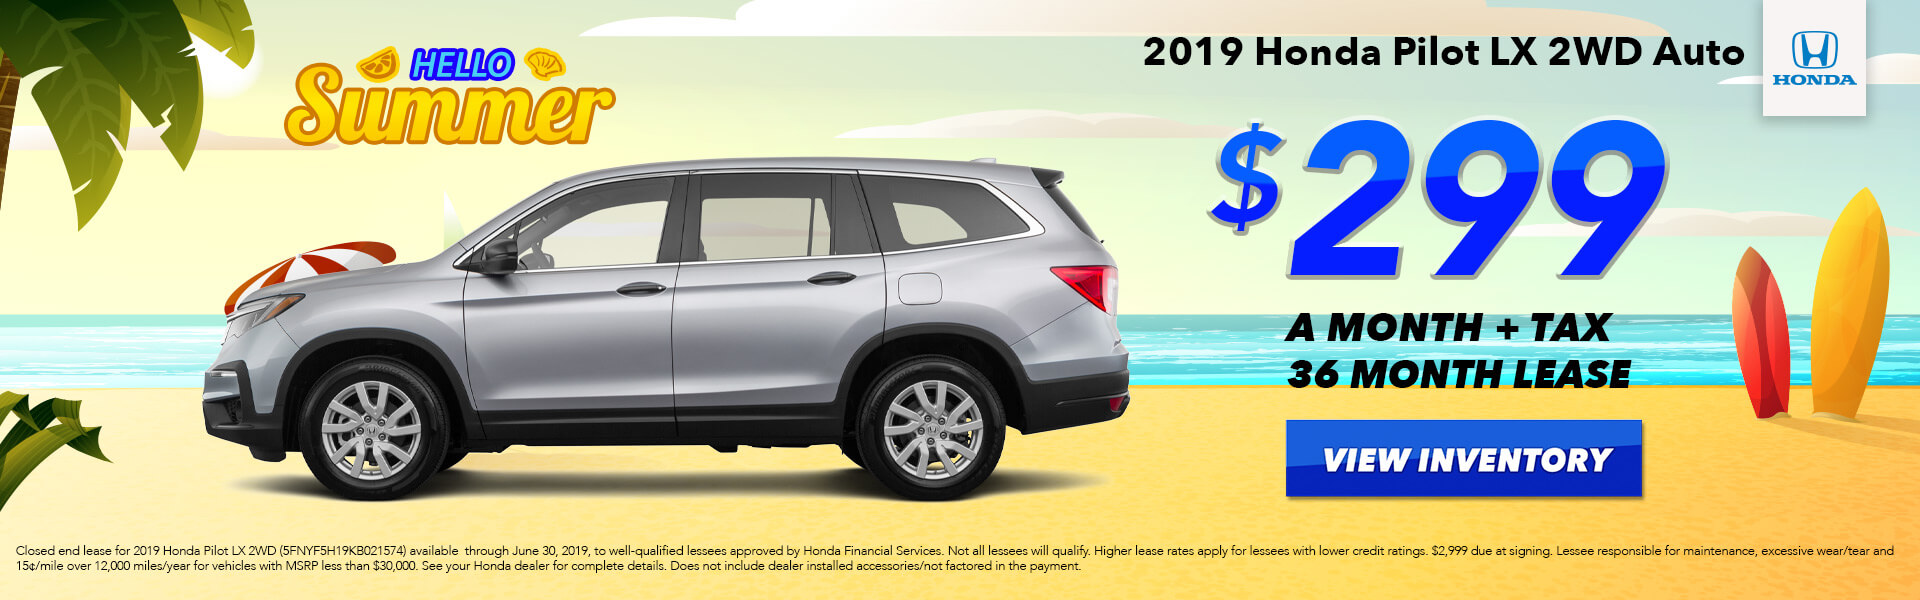 2019 Honda Pilot LX Lease for $299